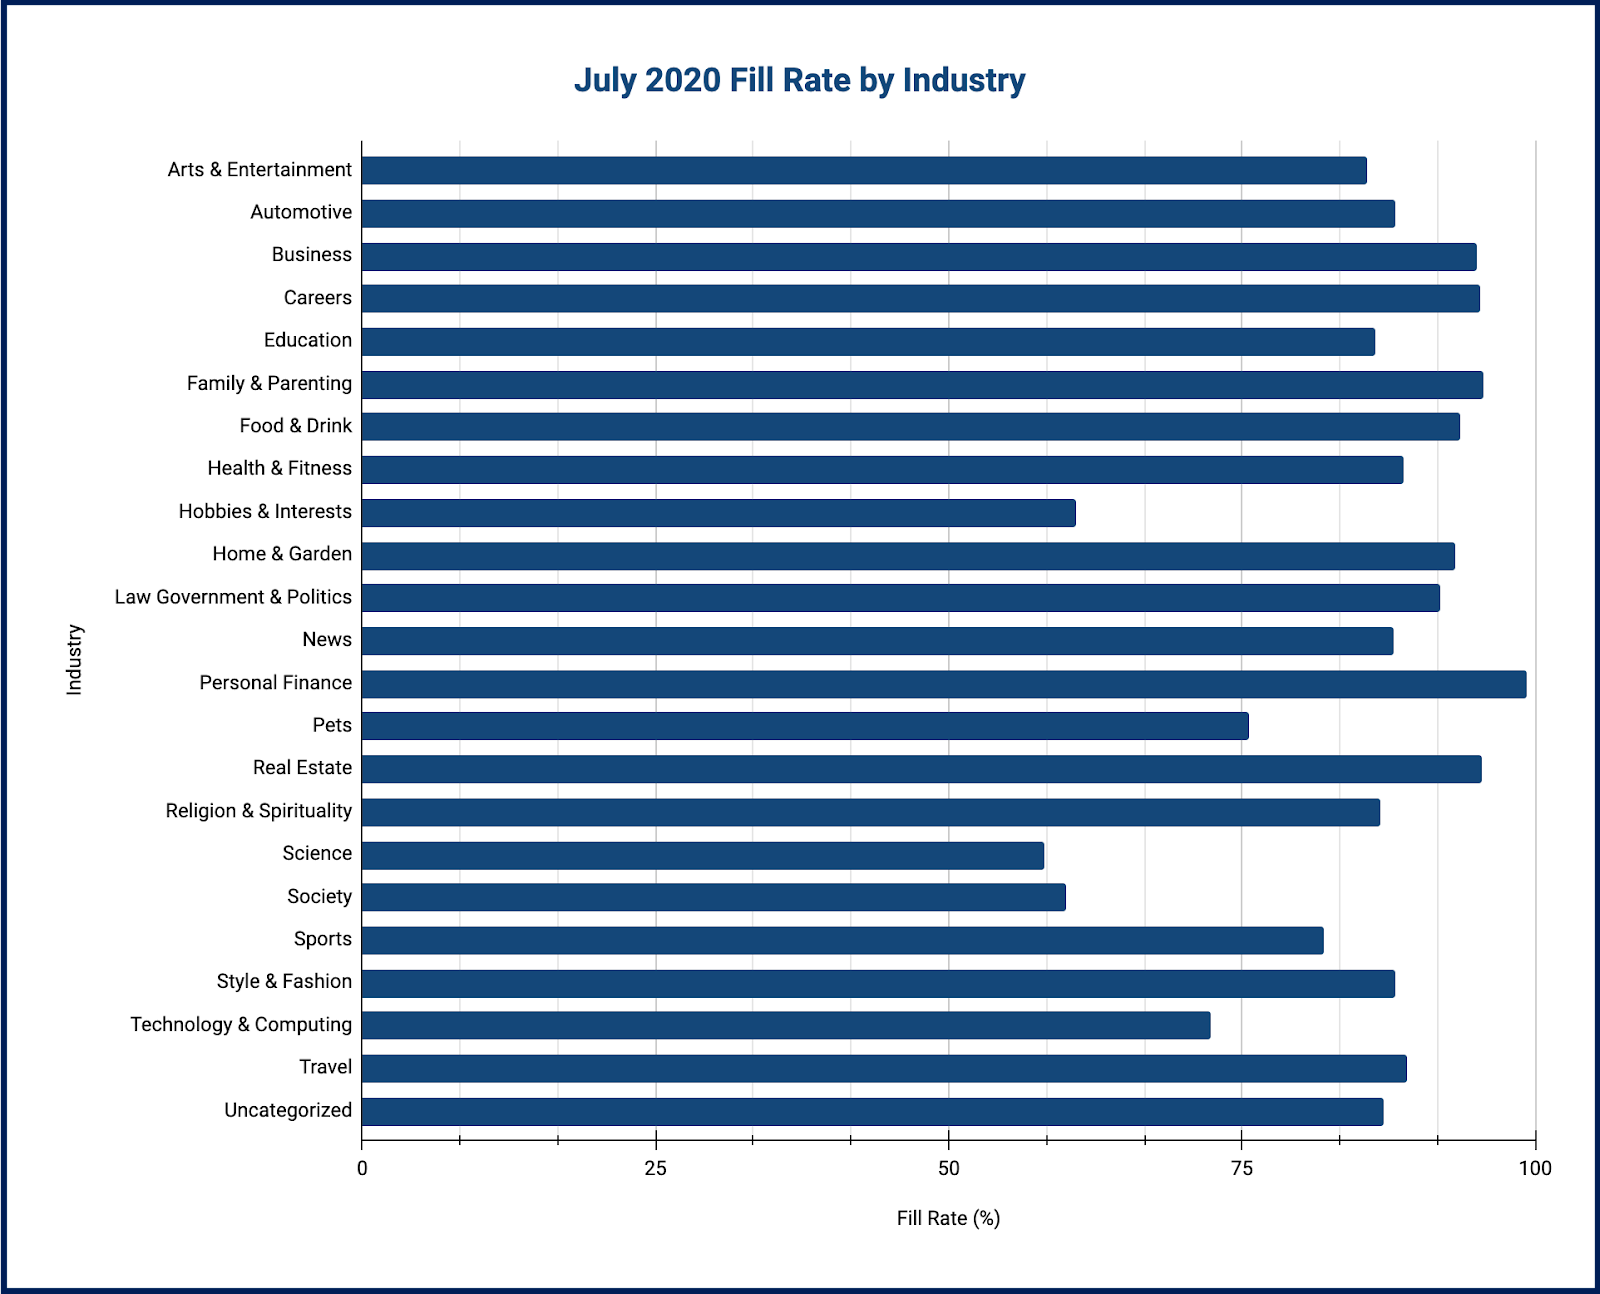 July 2020 Fill rate by industry